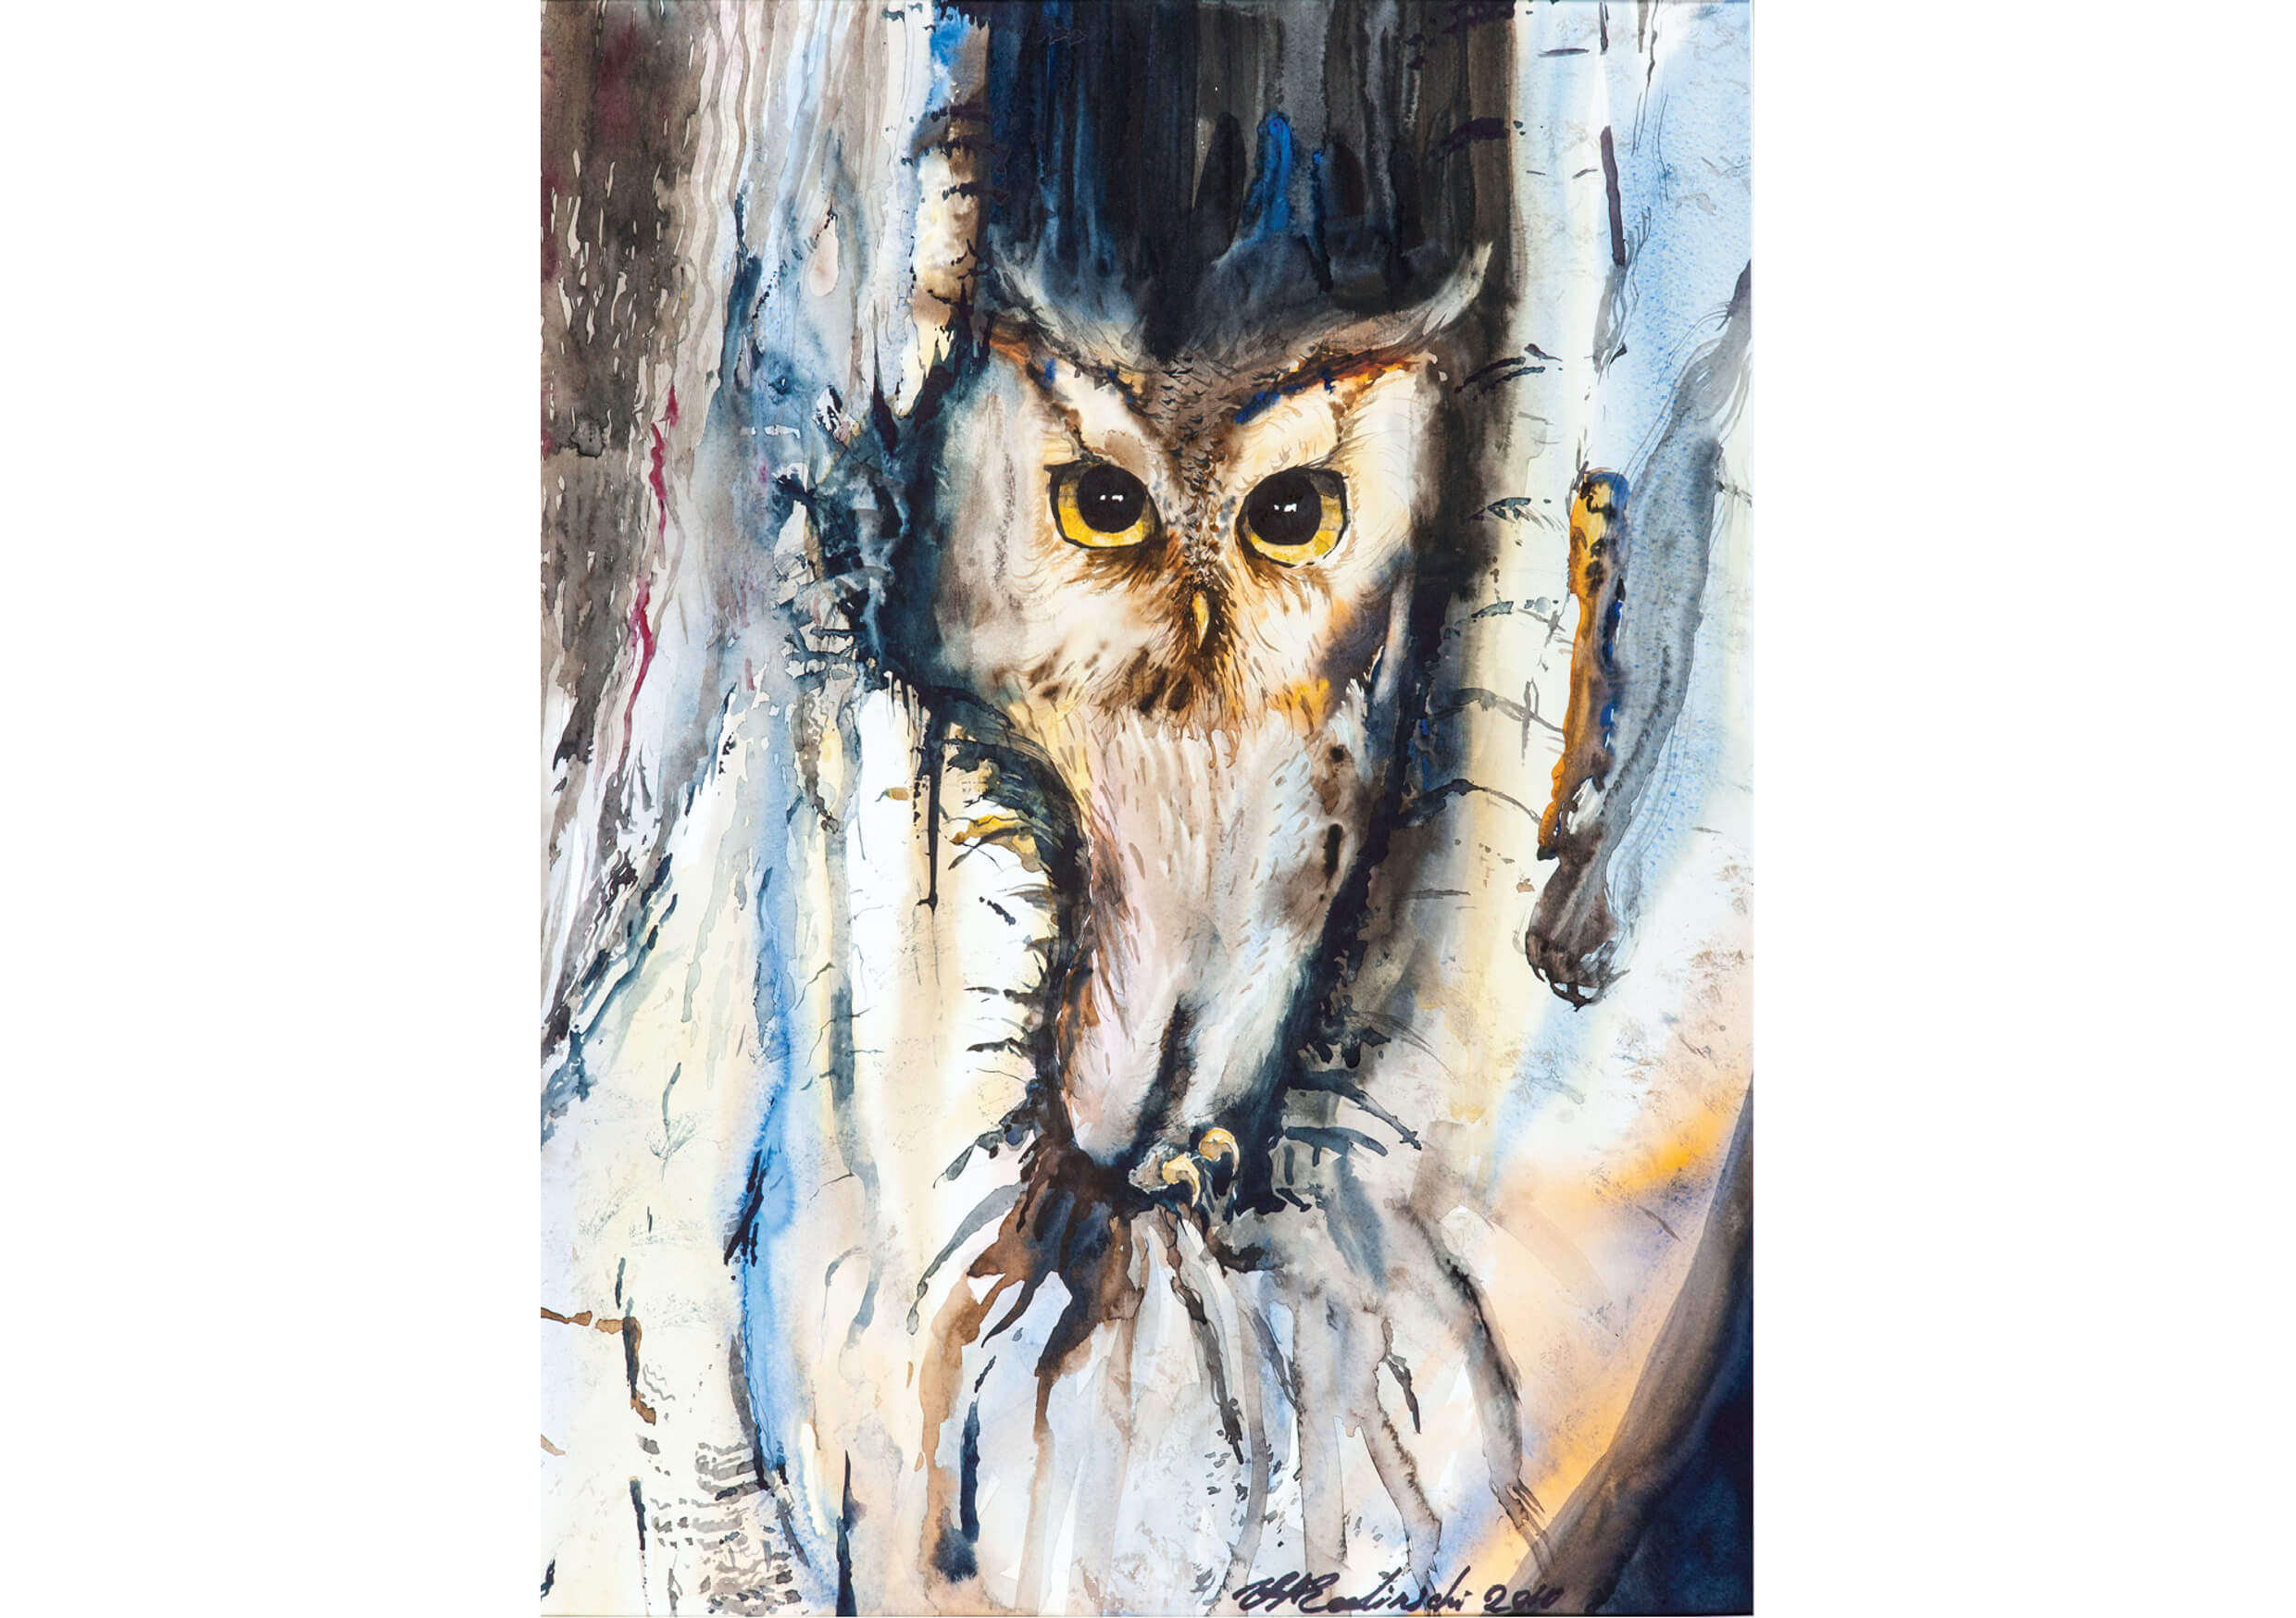 Owl II, Watercolour on paper, 70 x 52 cm